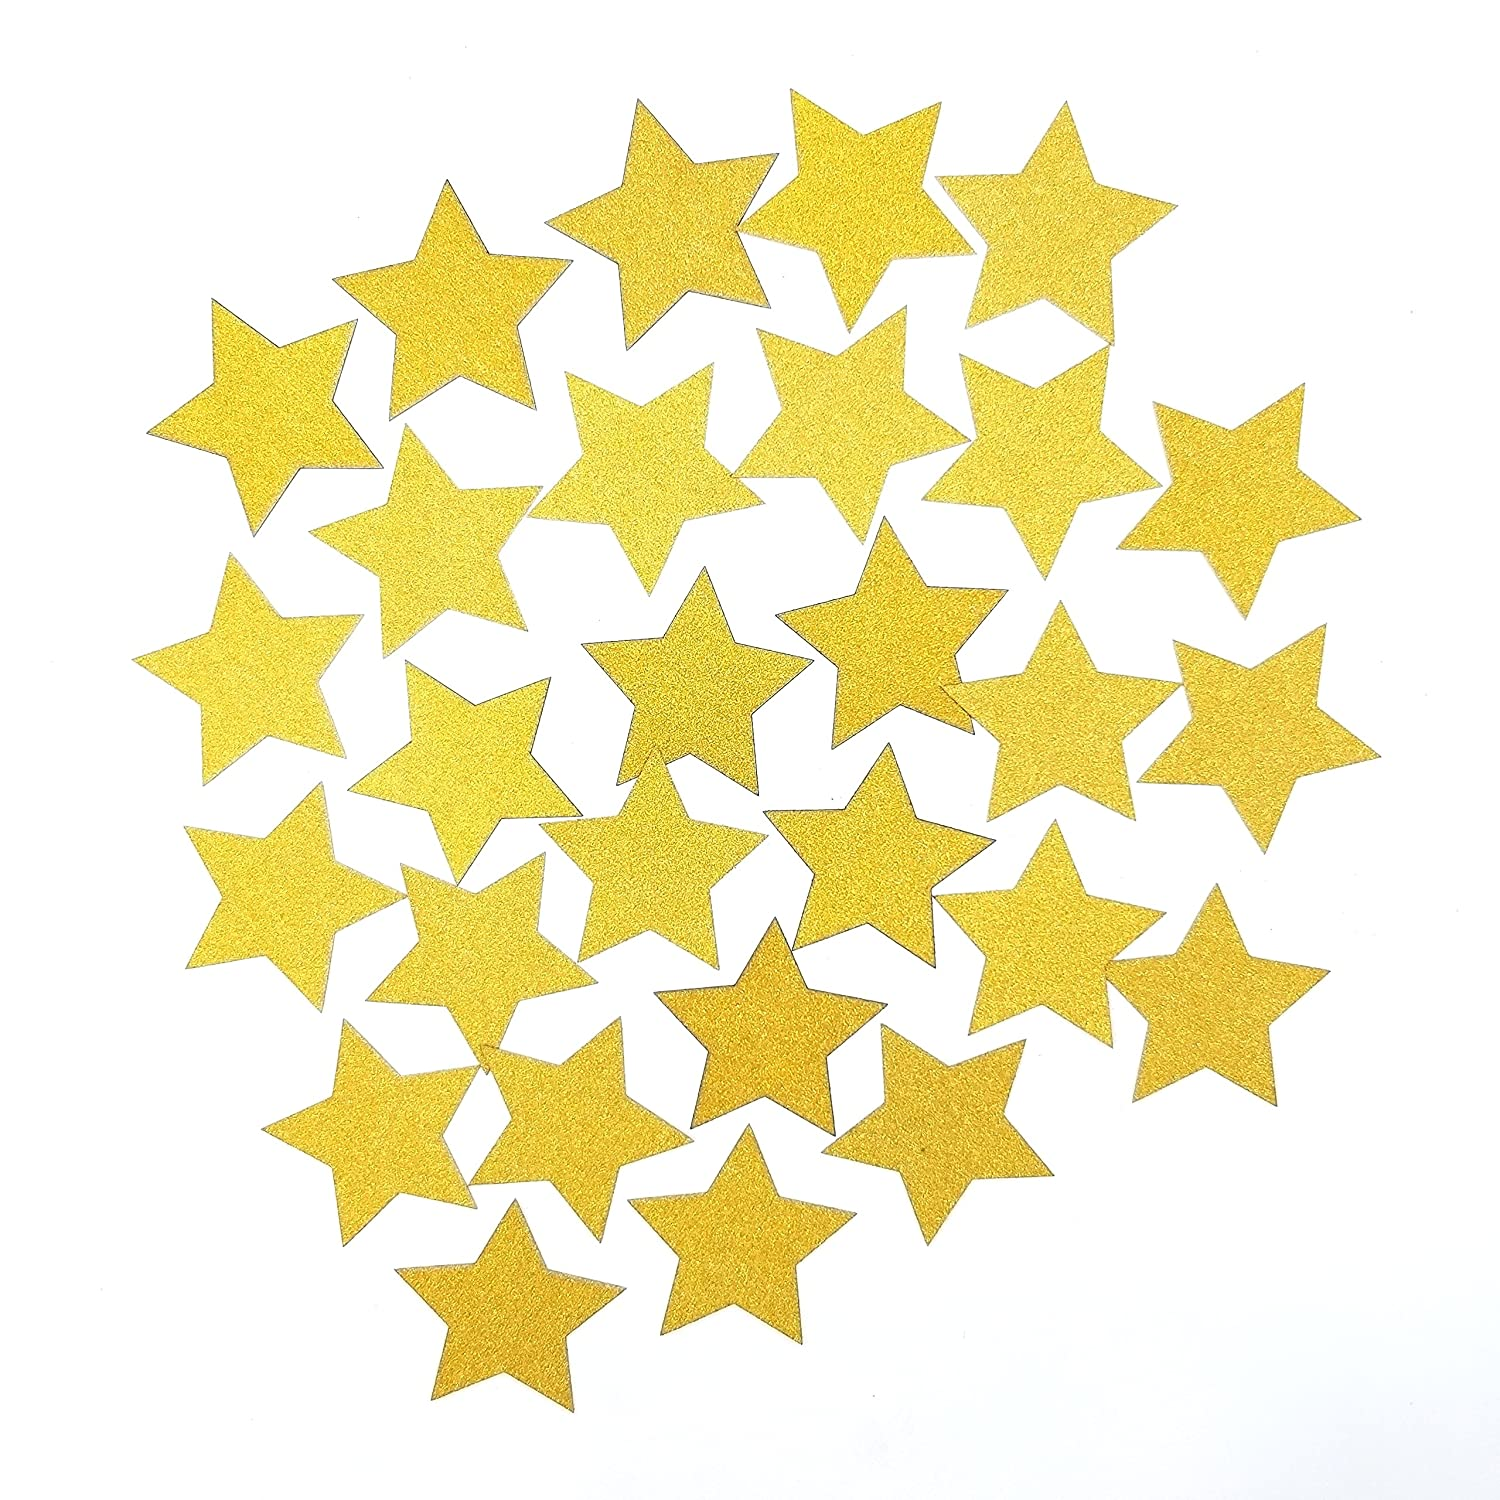 2 Inches Double Sided Gold Glitter Star Hand Punched Die Cuts Party Table Decor Confetti,Per Pack of 50